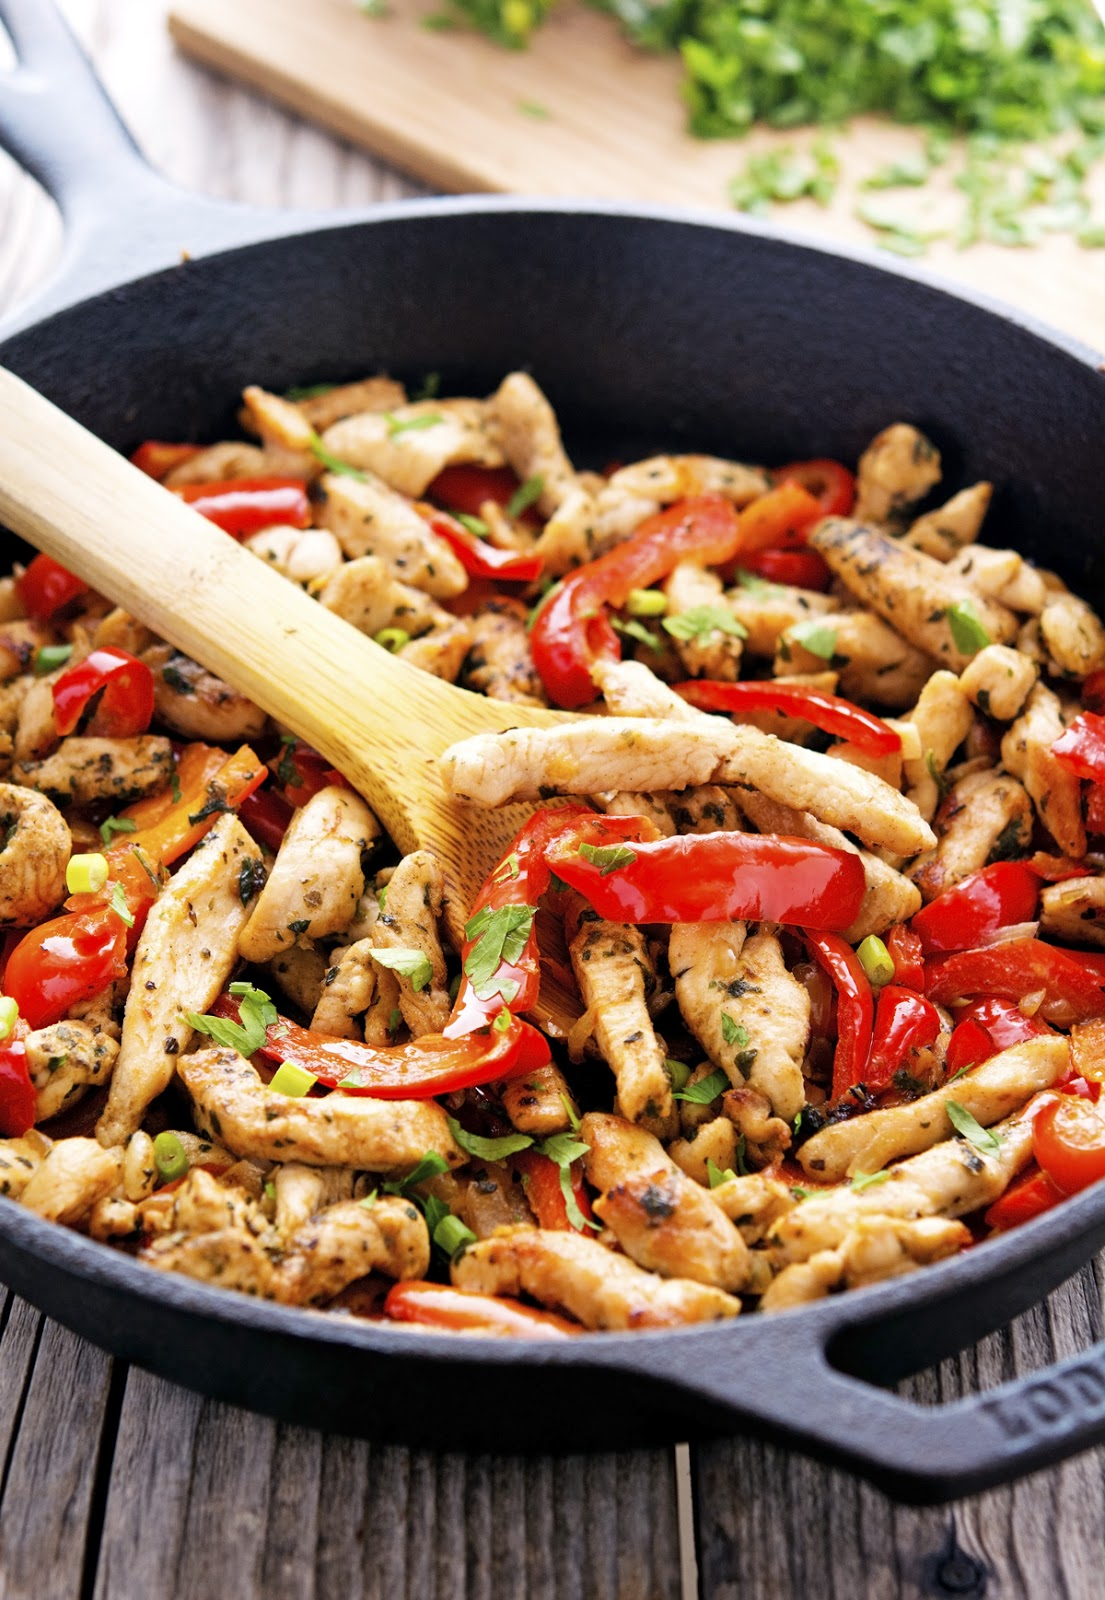 20-Minute Skillet Chicken Fajitas